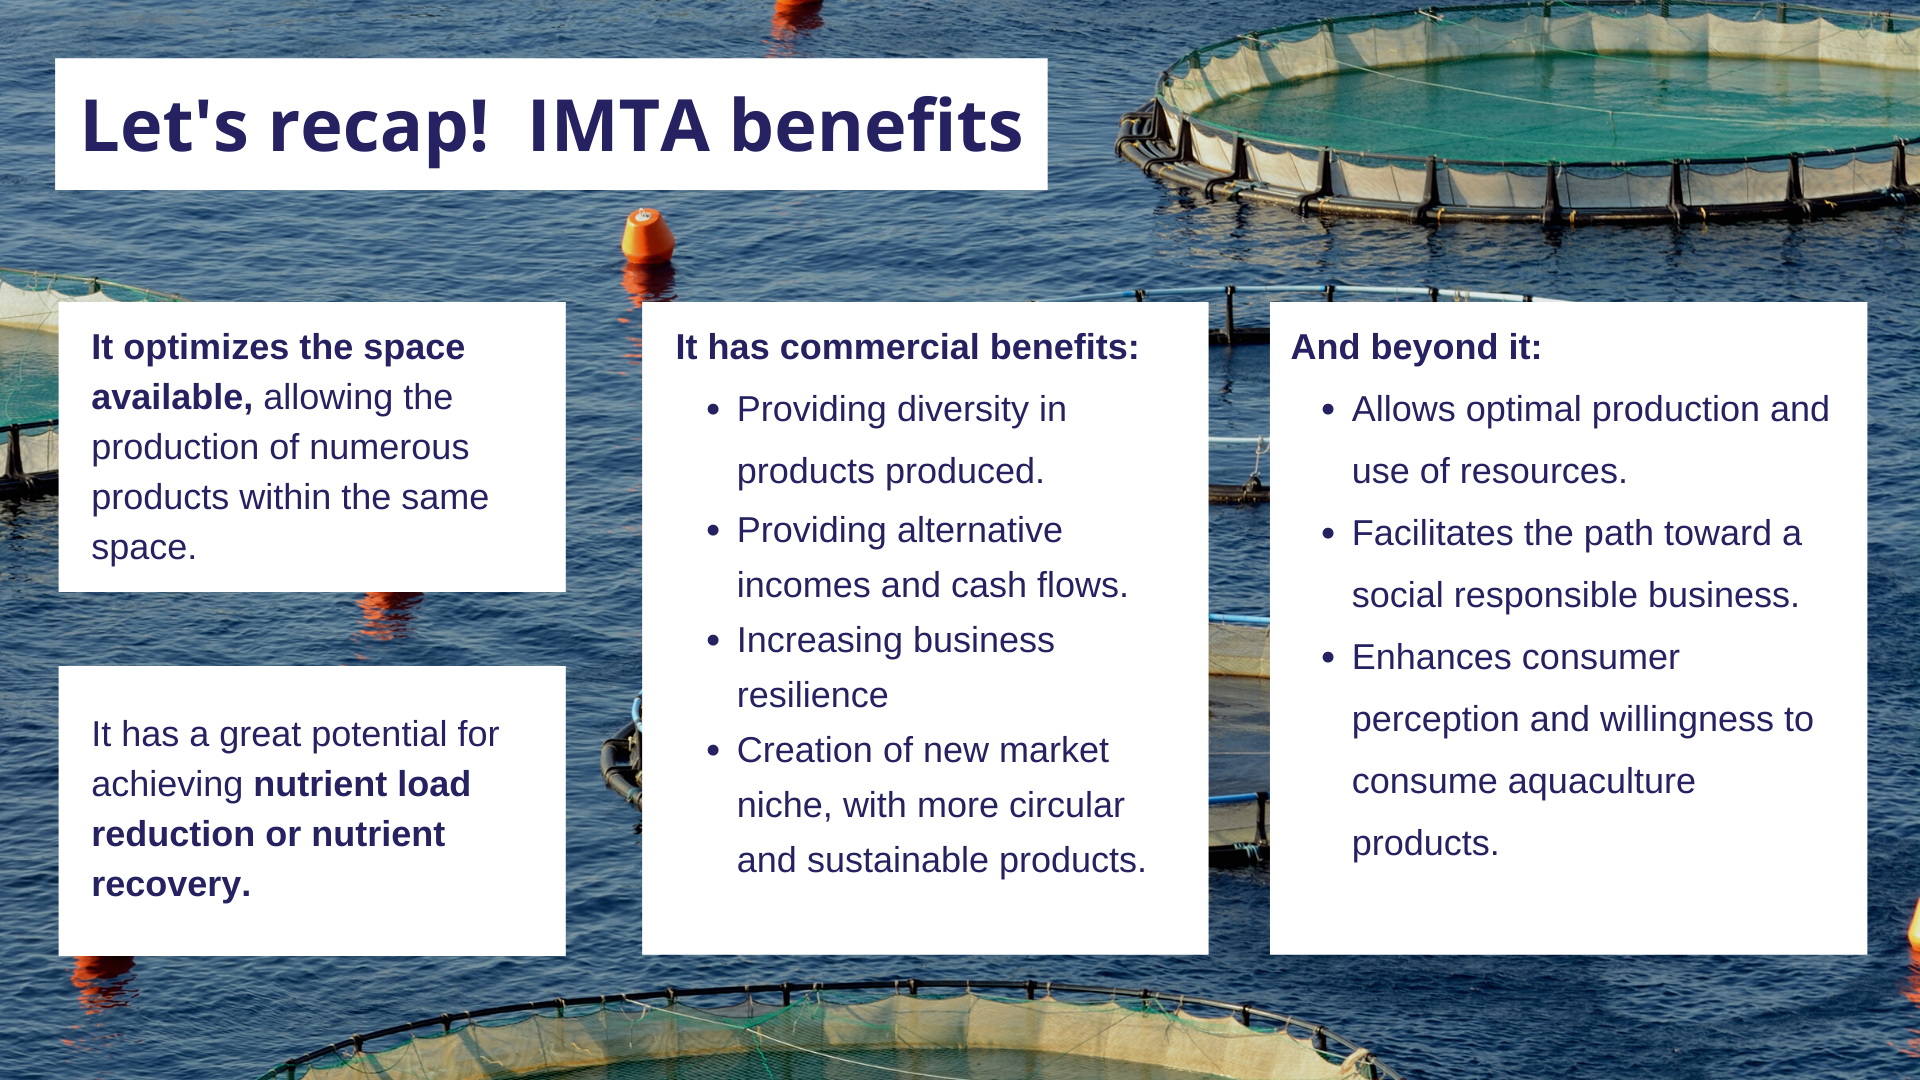 To summarize, these are the most relevant benefits of IMTA.